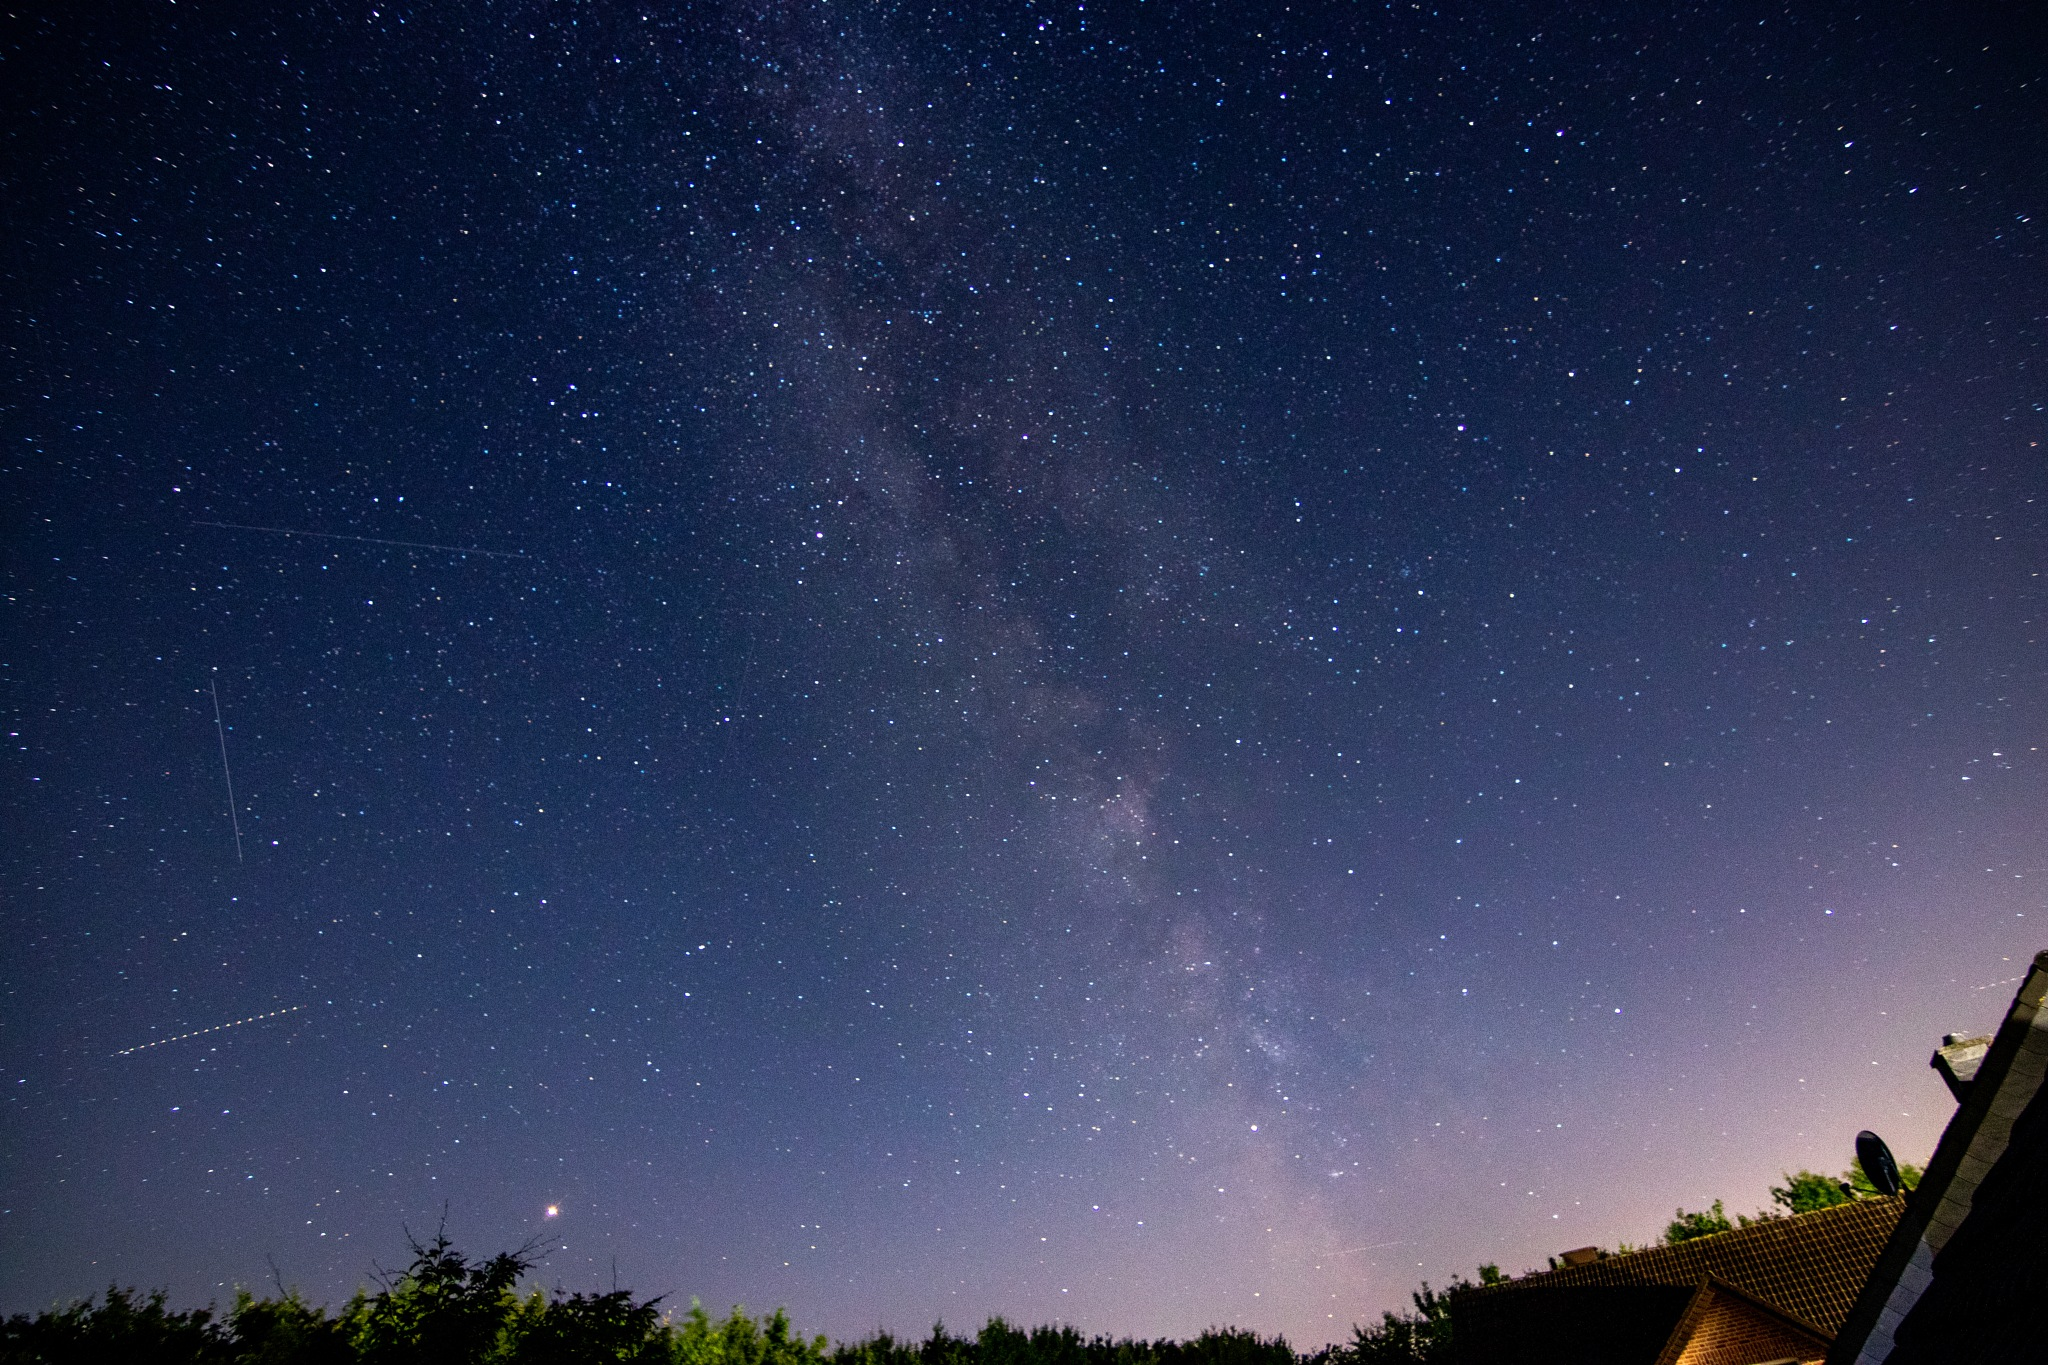 milky way by Violinjerry Lu